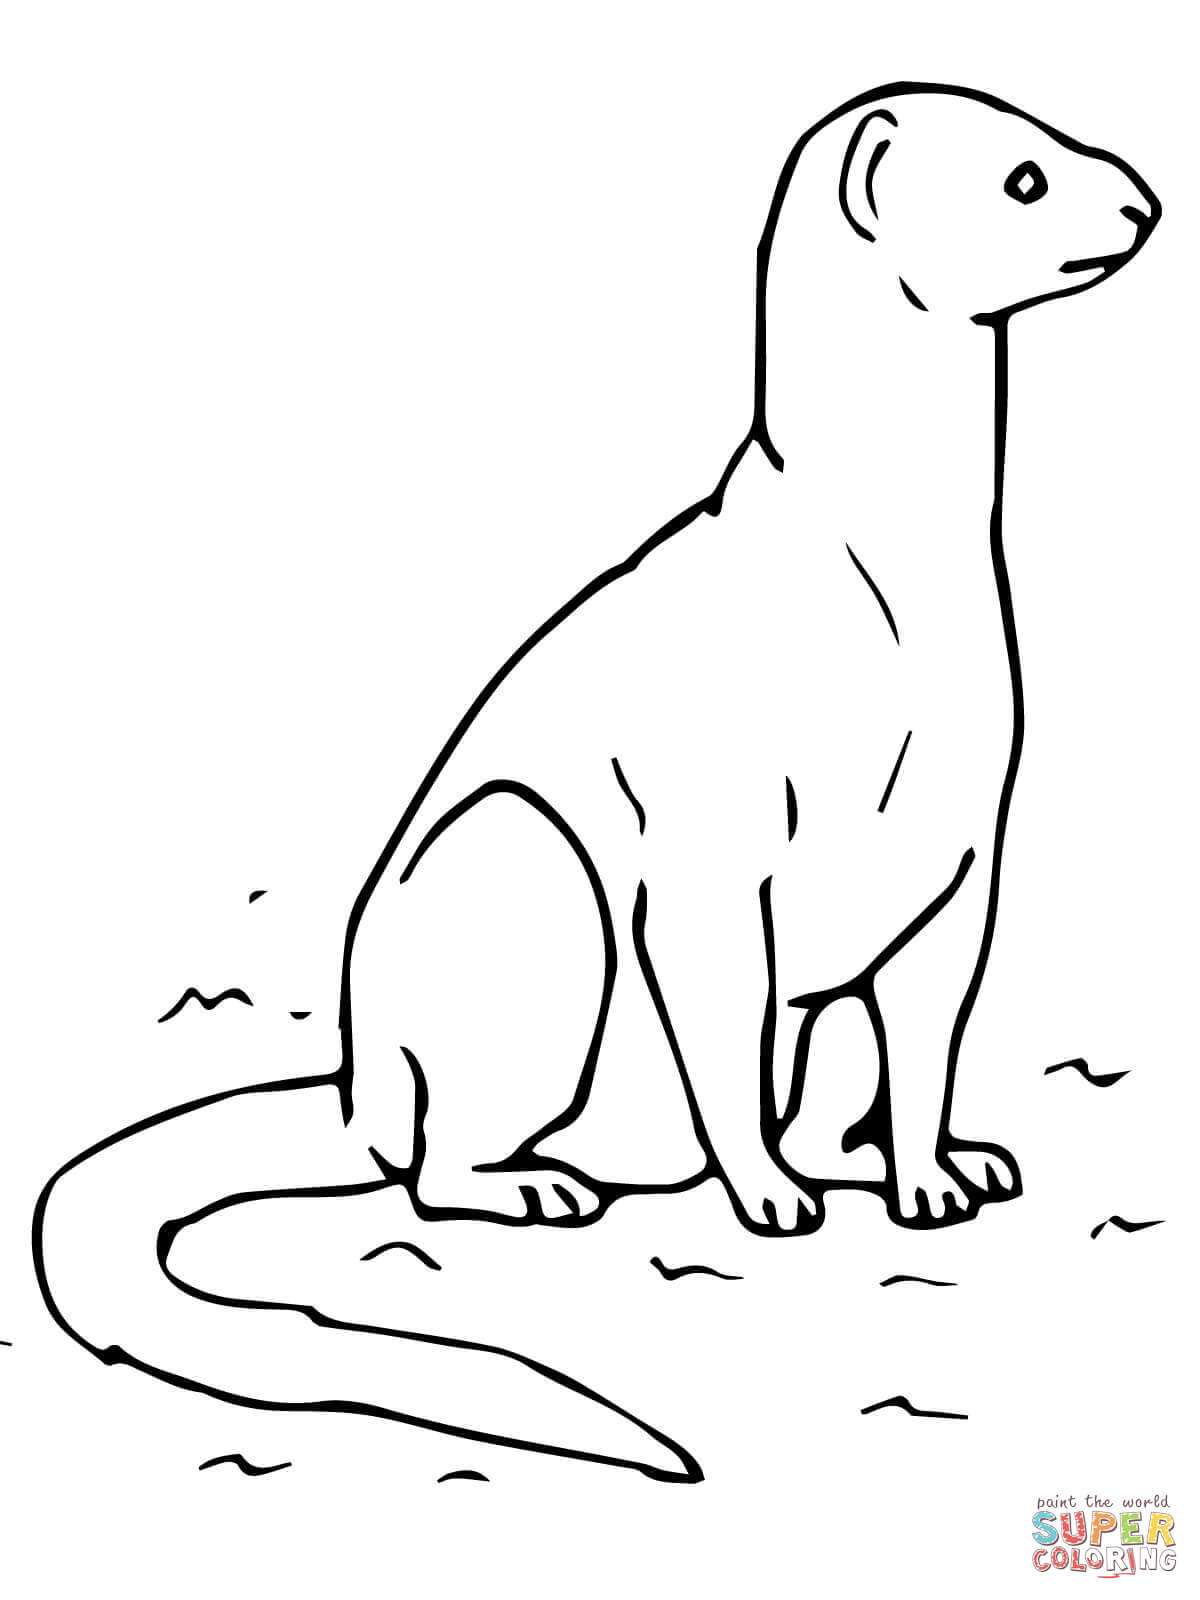 Yellow Mongoose coloring #16, Download drawings